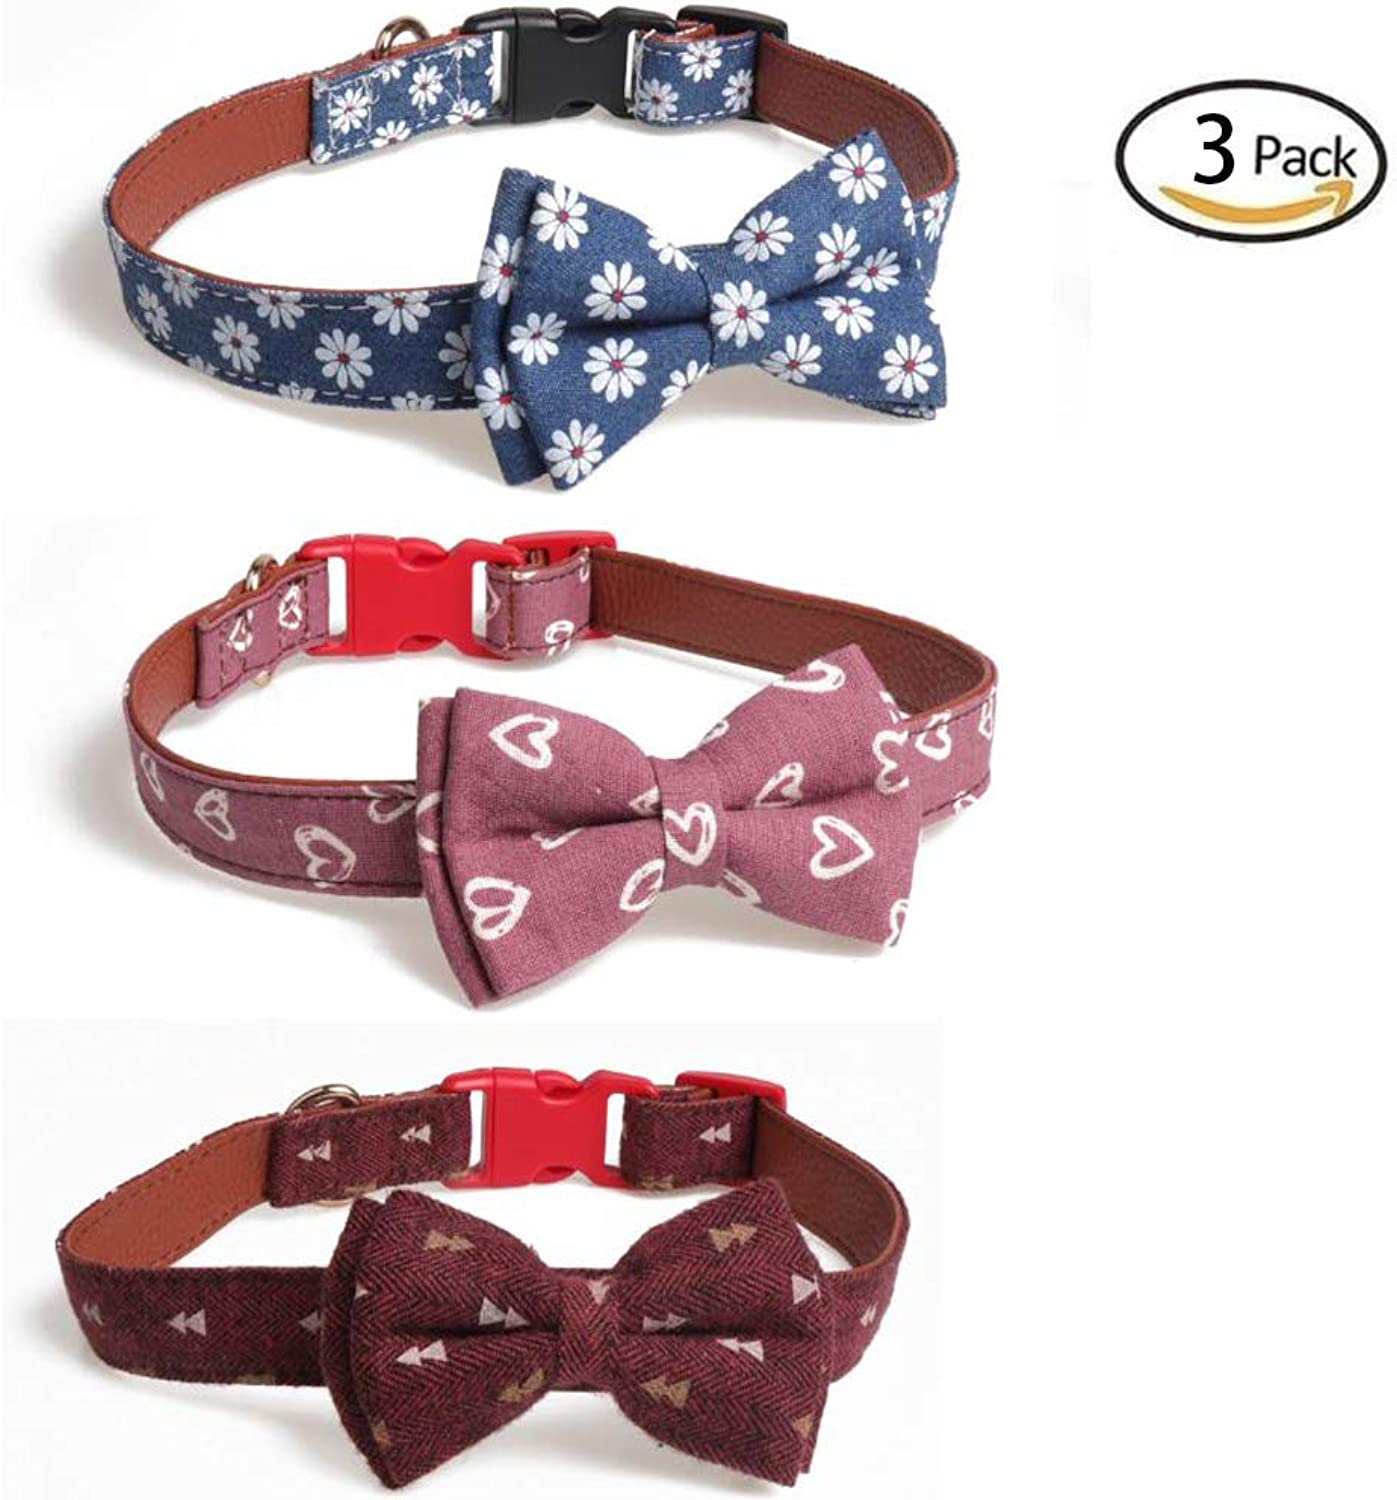 Dog Collar Set, Soft and Comfortable Pet Collar and Leash can be Adjusted in Size, 3 Sizes can be Selected, 3 Pieces,L